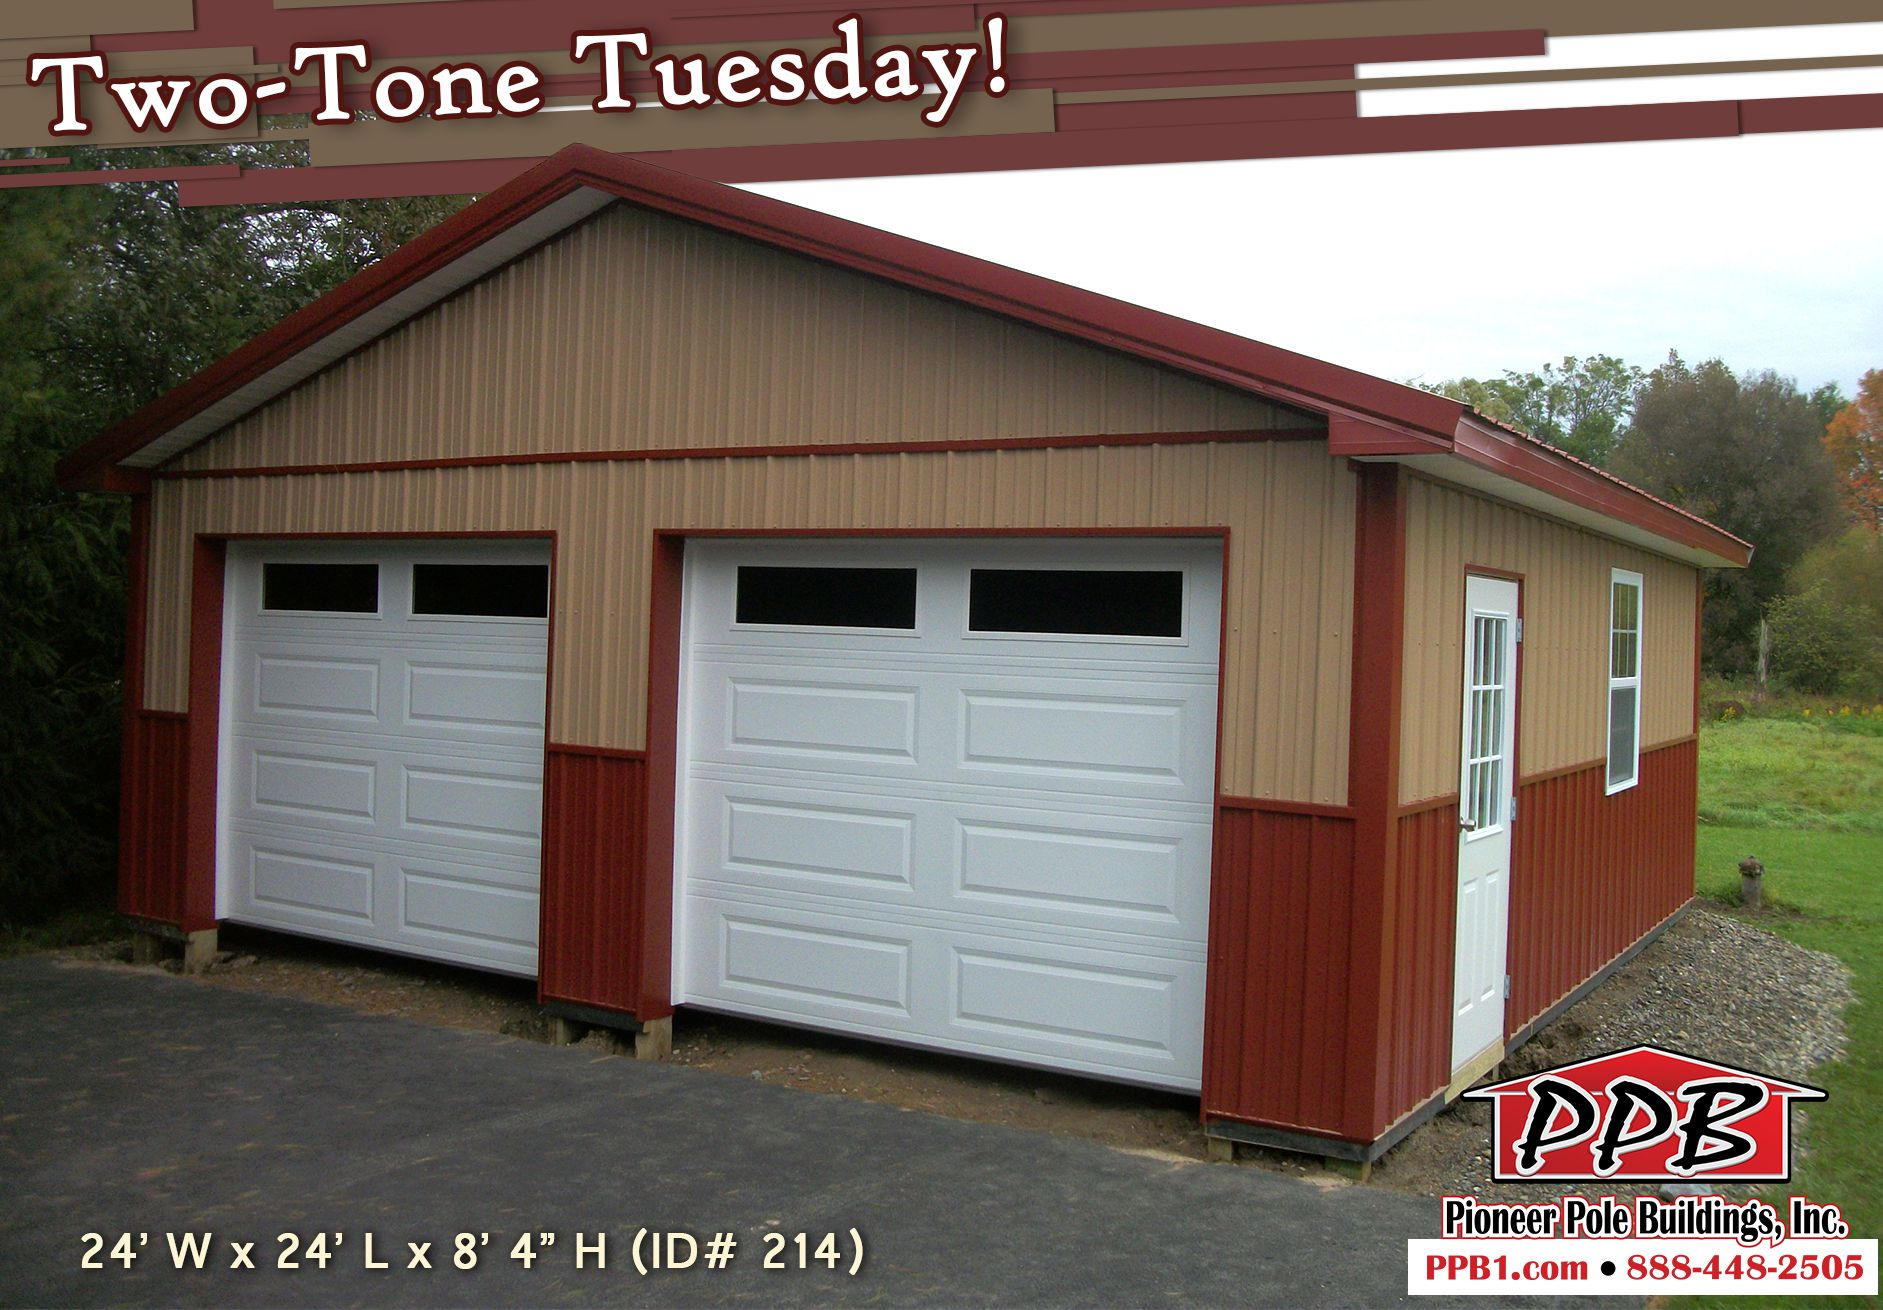 Two Tone Tuesday Dimensions 24 W X 24 L X 8 4 H Id 214 24 Standard Trusses 4 On Center 4 12 Pole Barn Homes Pole Buildings Building A Pole Barn